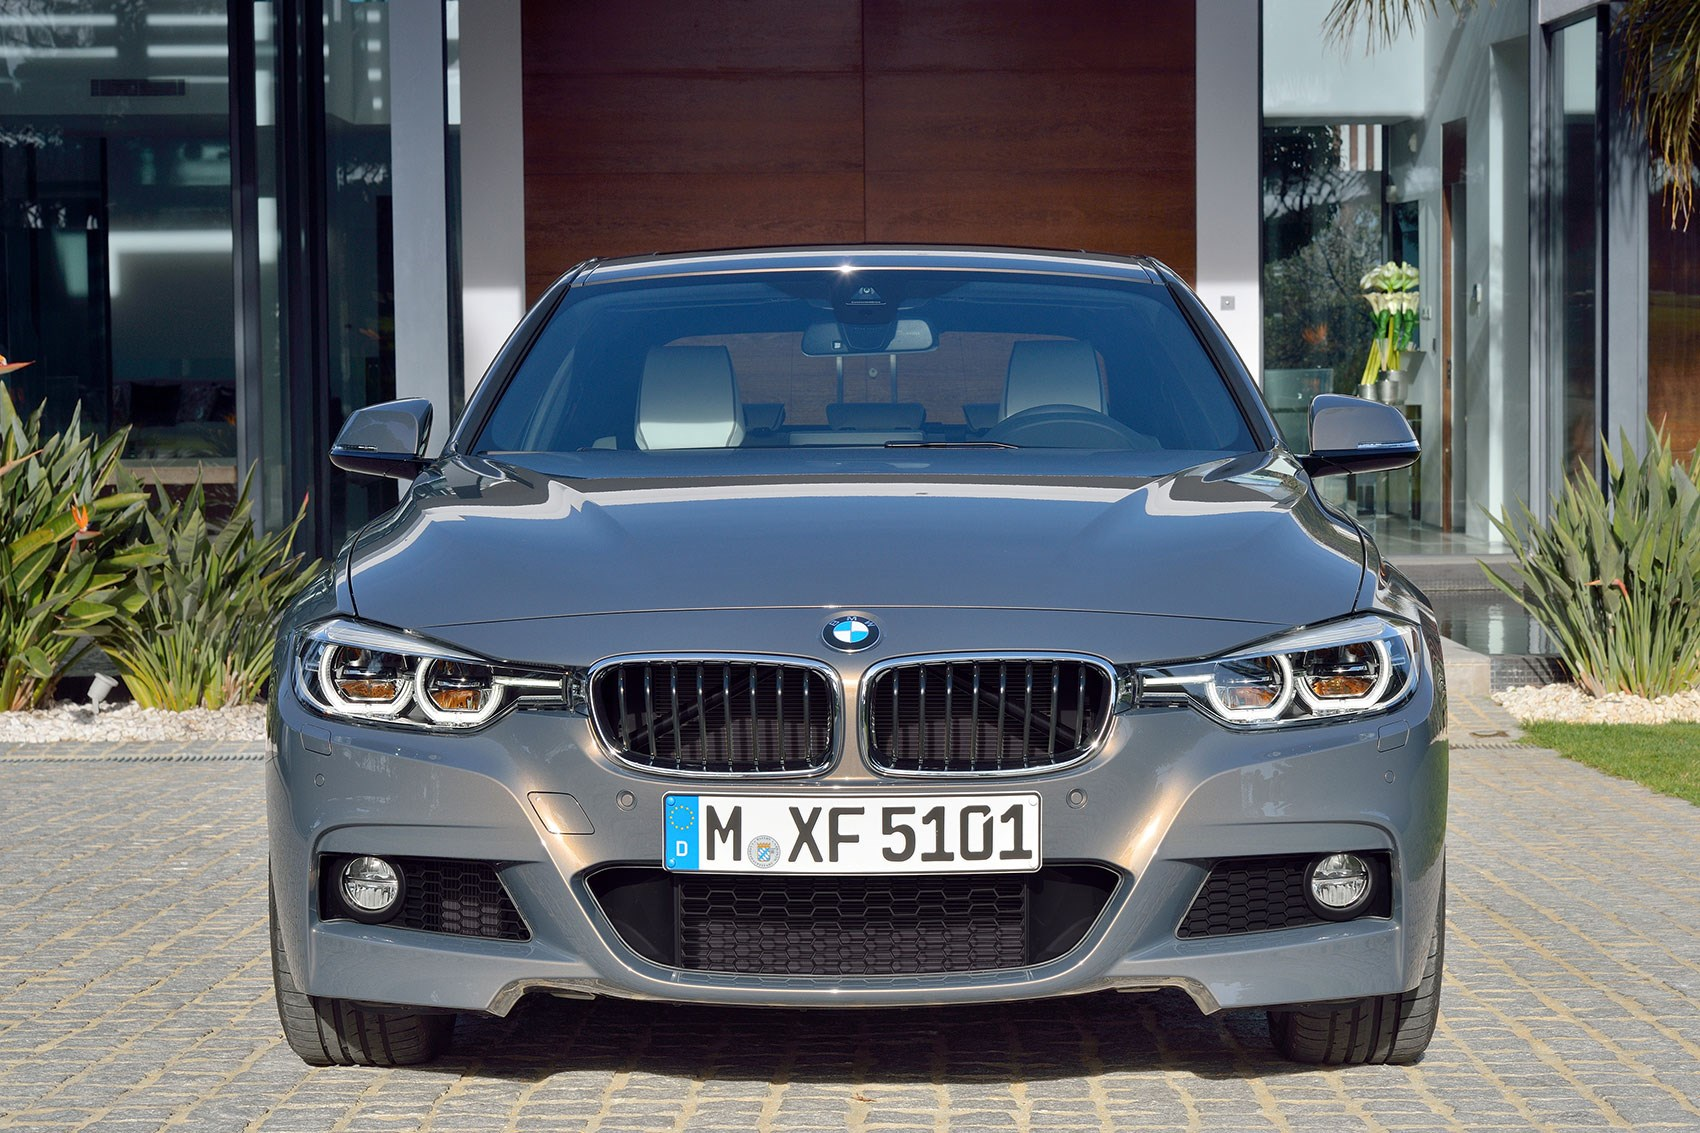 Revised 3 Series Front End Looks Lower And Wider